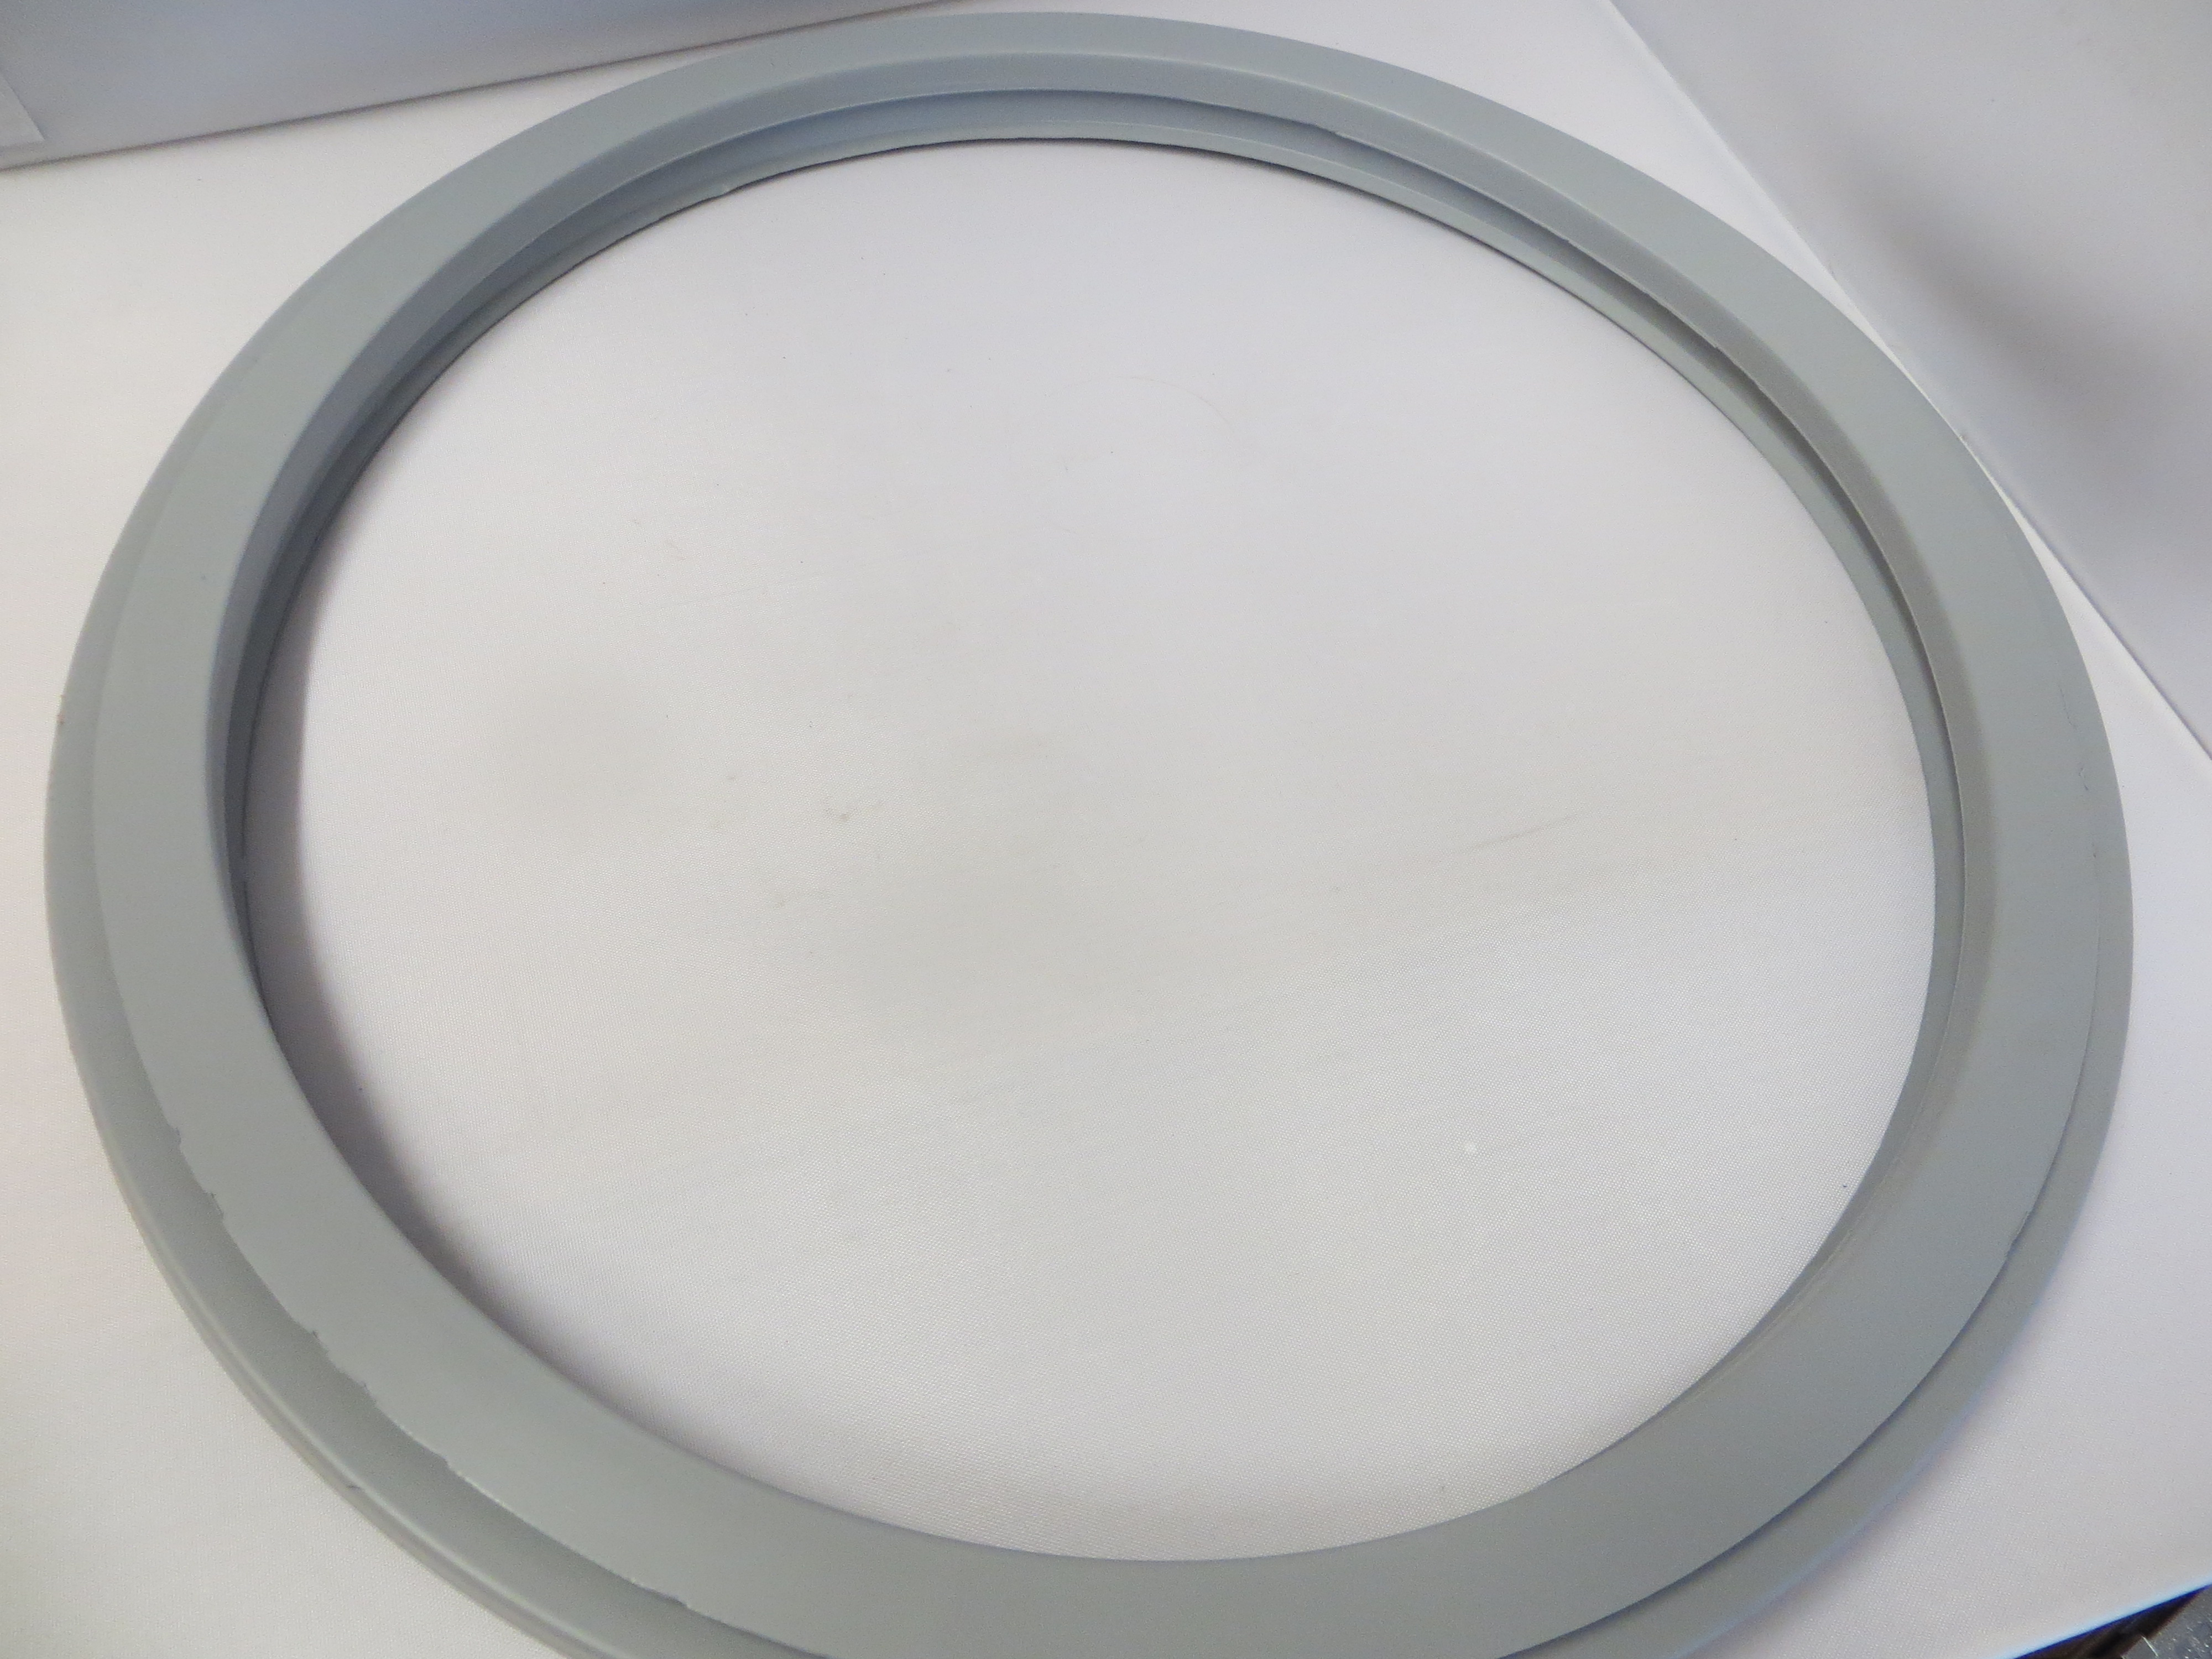 F170124 - Door Gasket  SC50-60  Gray